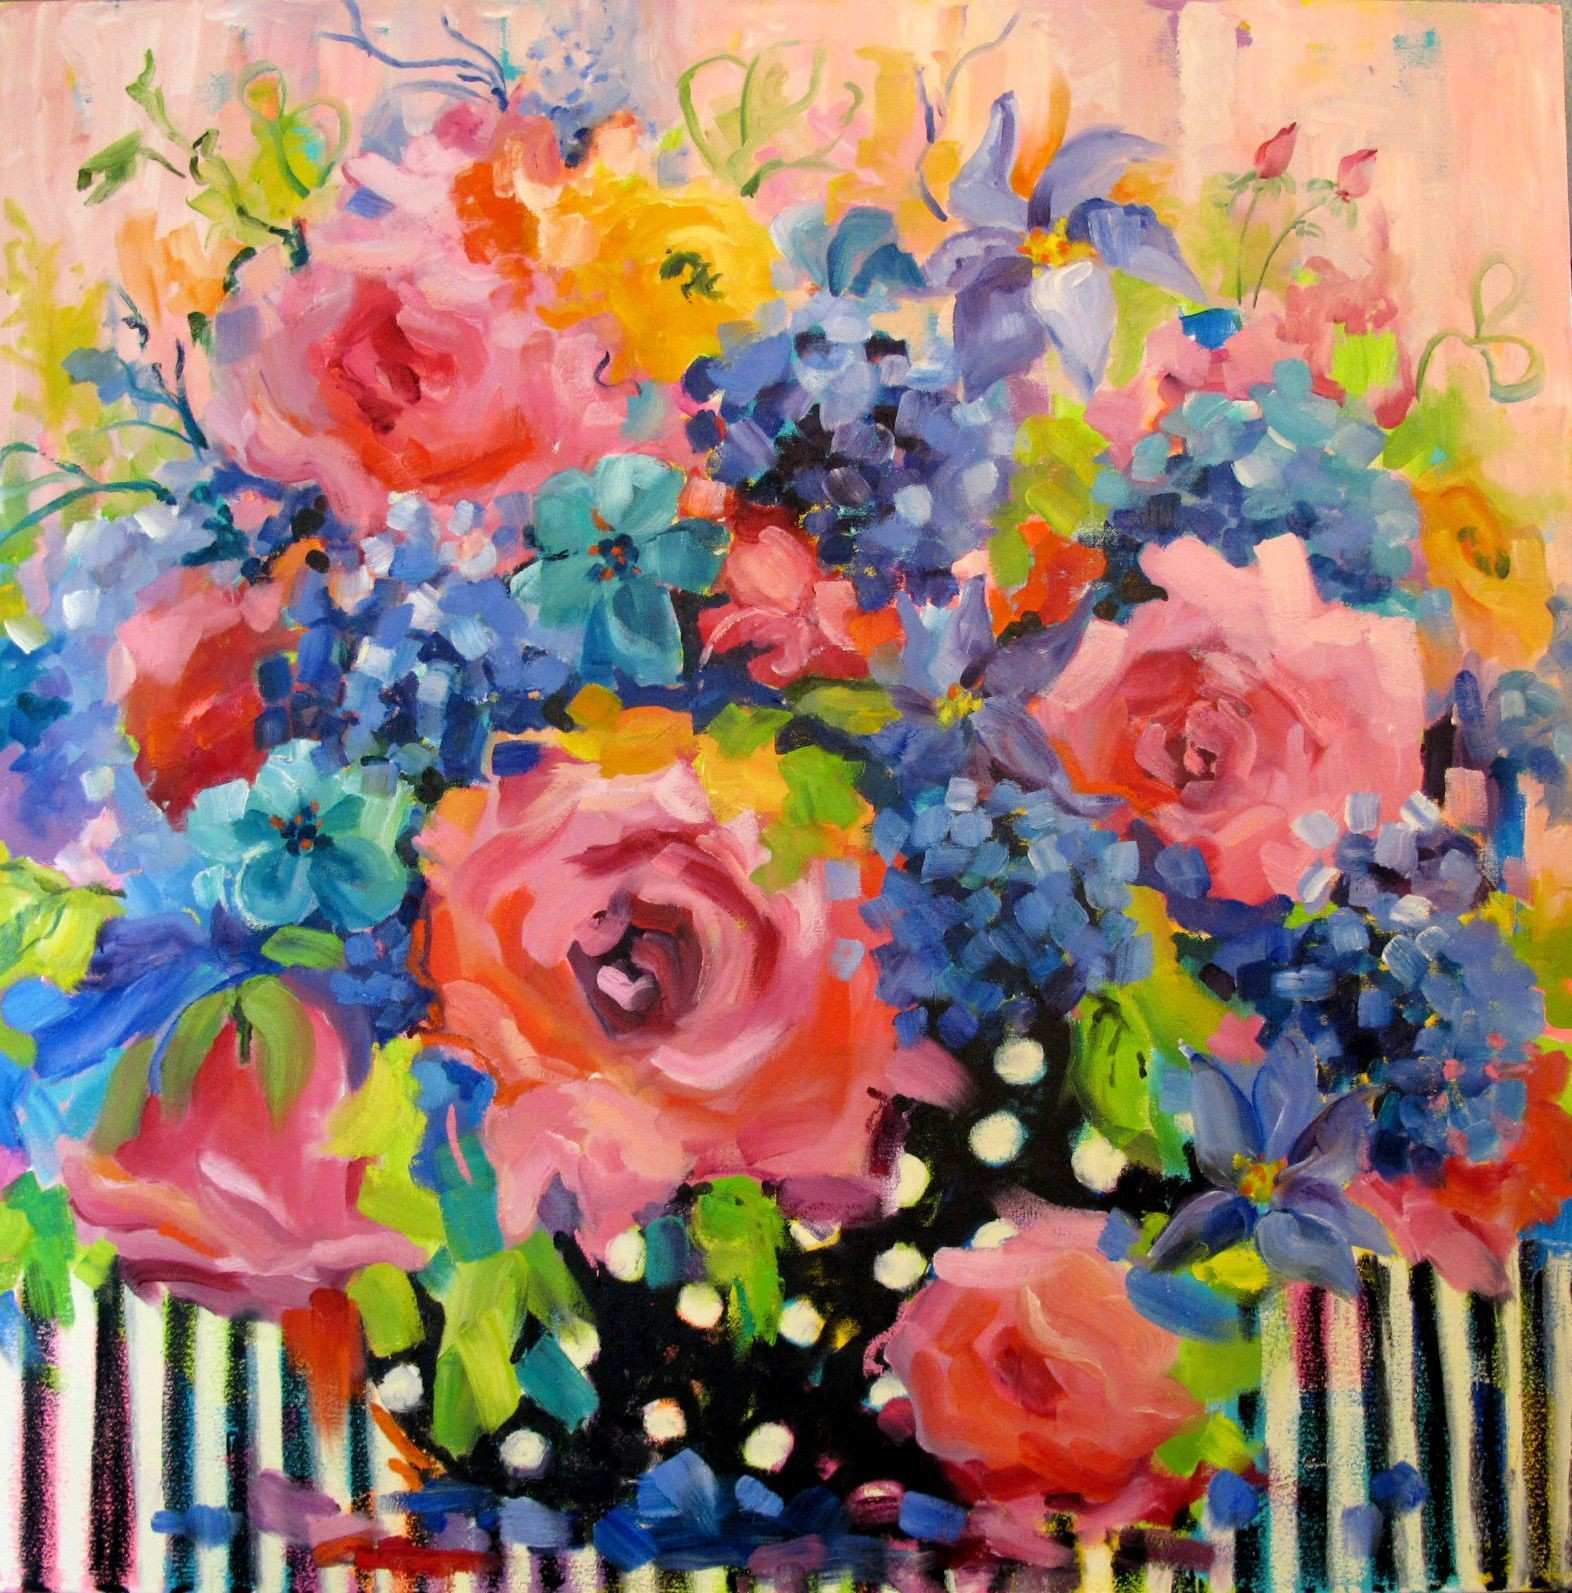 11 Grandma s Flowers 36x36 Oil on canvas